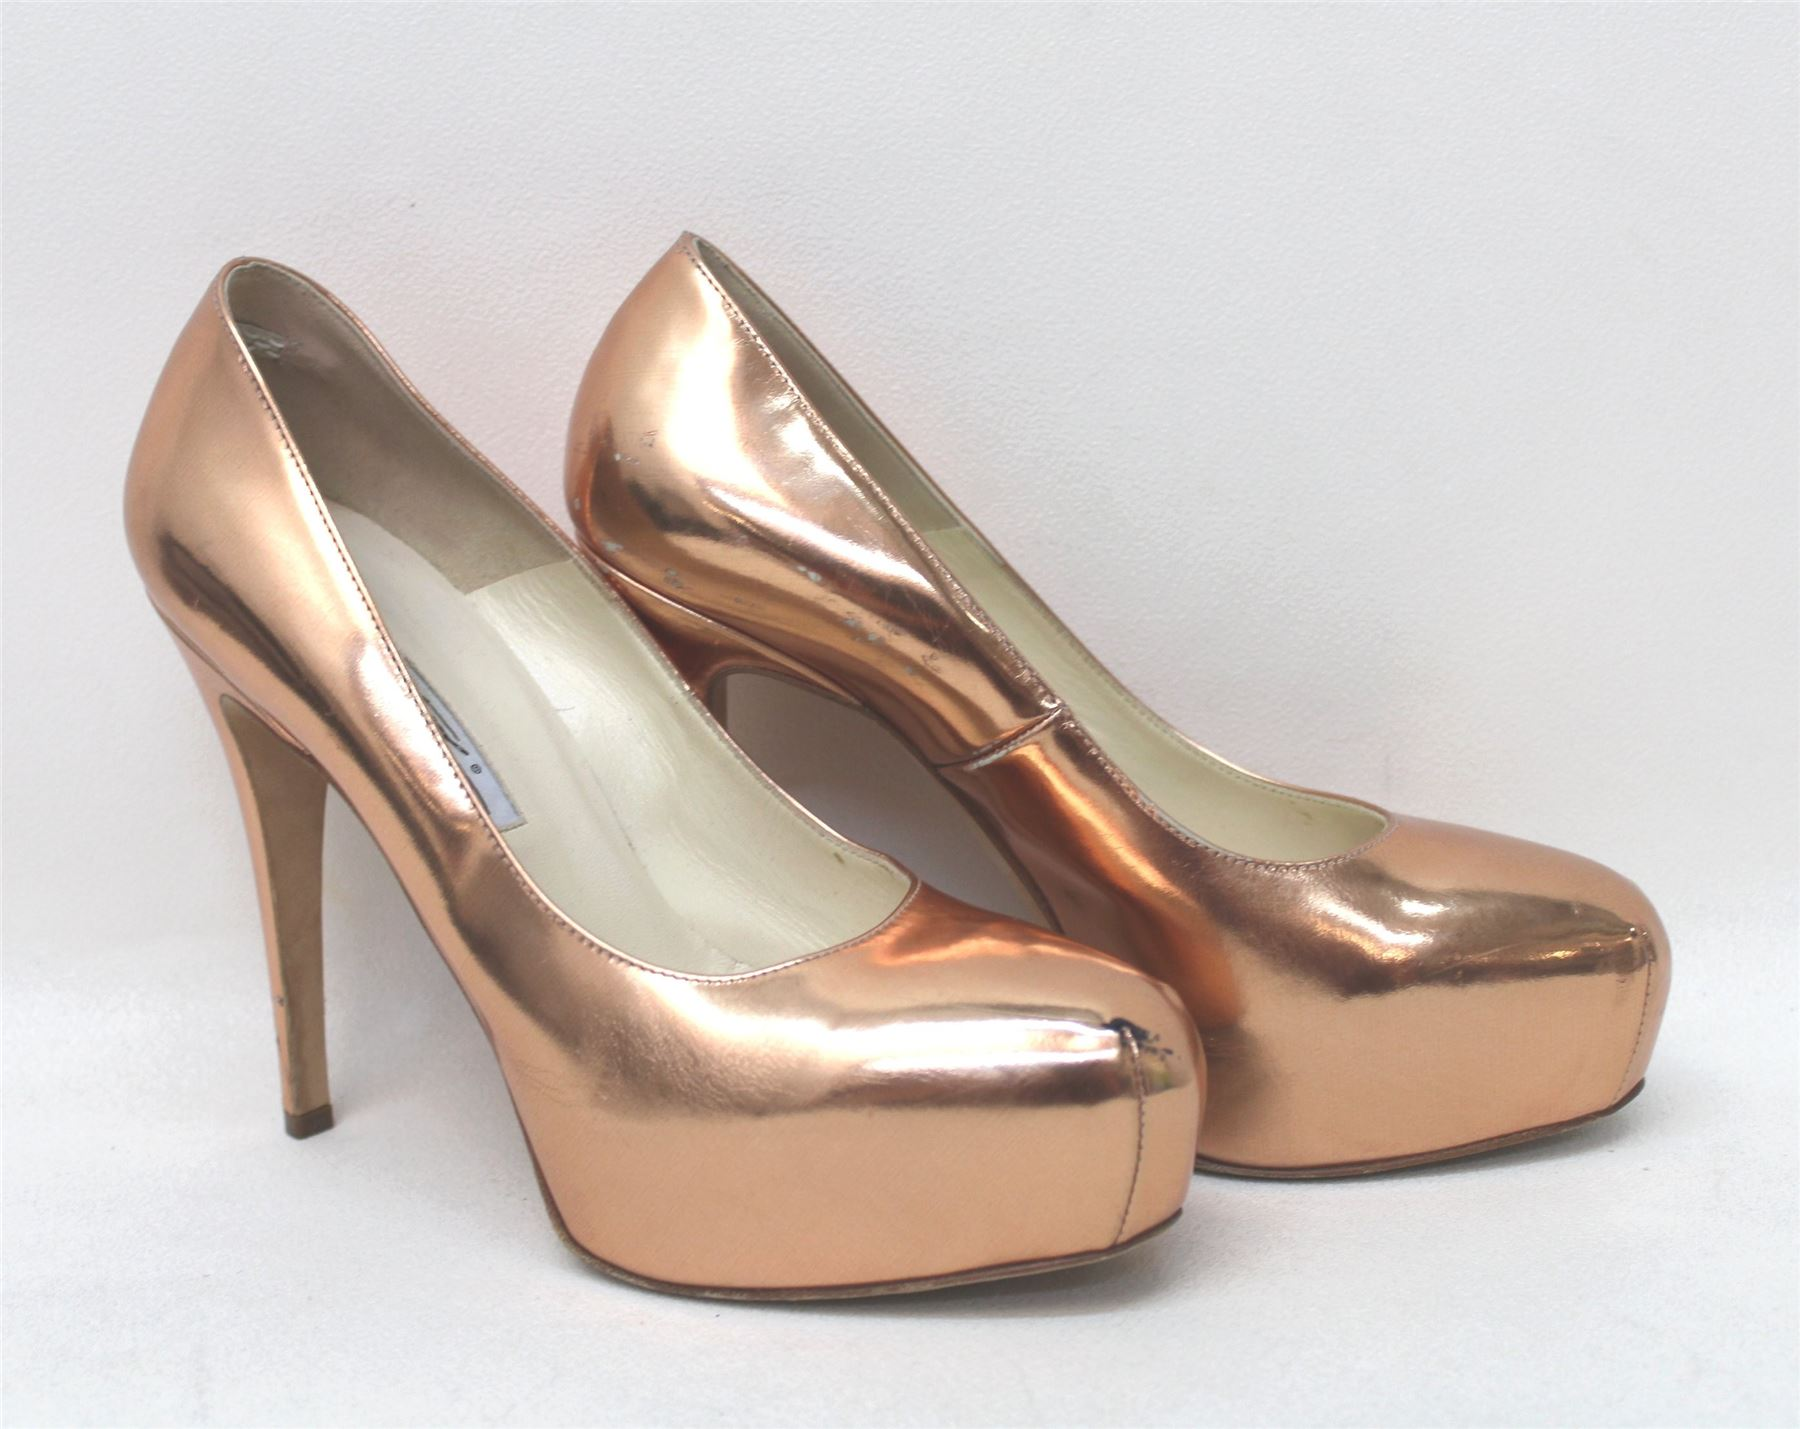 Lulus Exclusive! Make every outfit a special one in the Lulus Audrina Copper Ankle Strap Heels! Metallic vegan leather shapes this minimalist, single sole silhouette with slender toe strap, structured heel cup, and ankle strap with covered buckle.4/5(44).